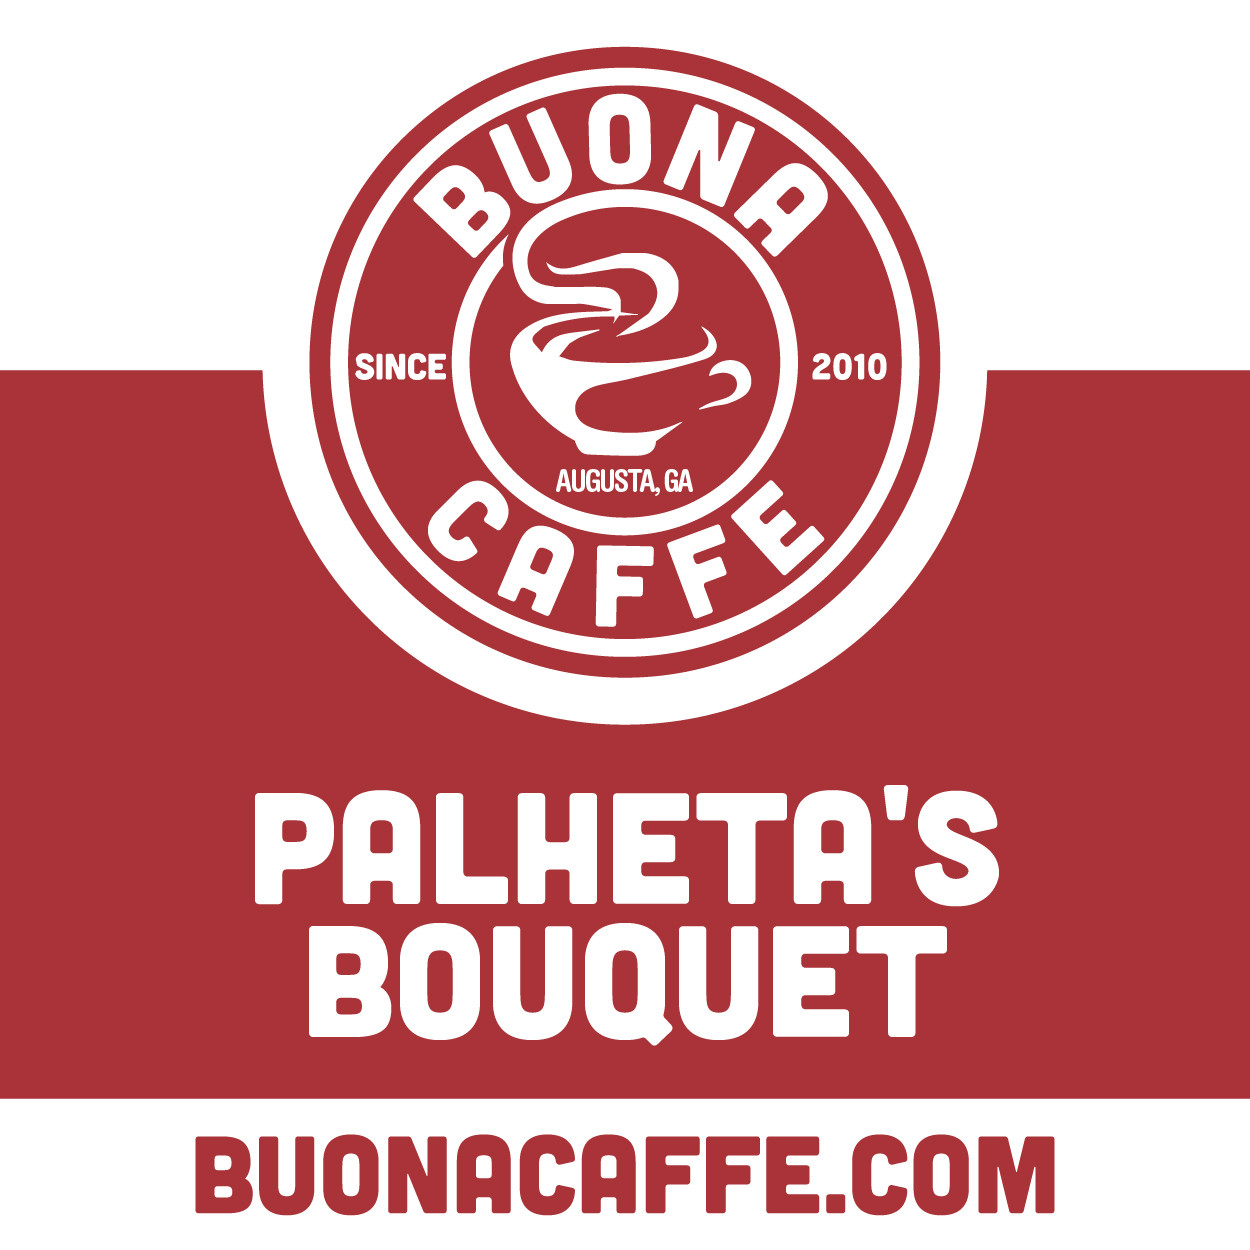 Palheta's Bouquet, 12 oz. (Medium Roast)